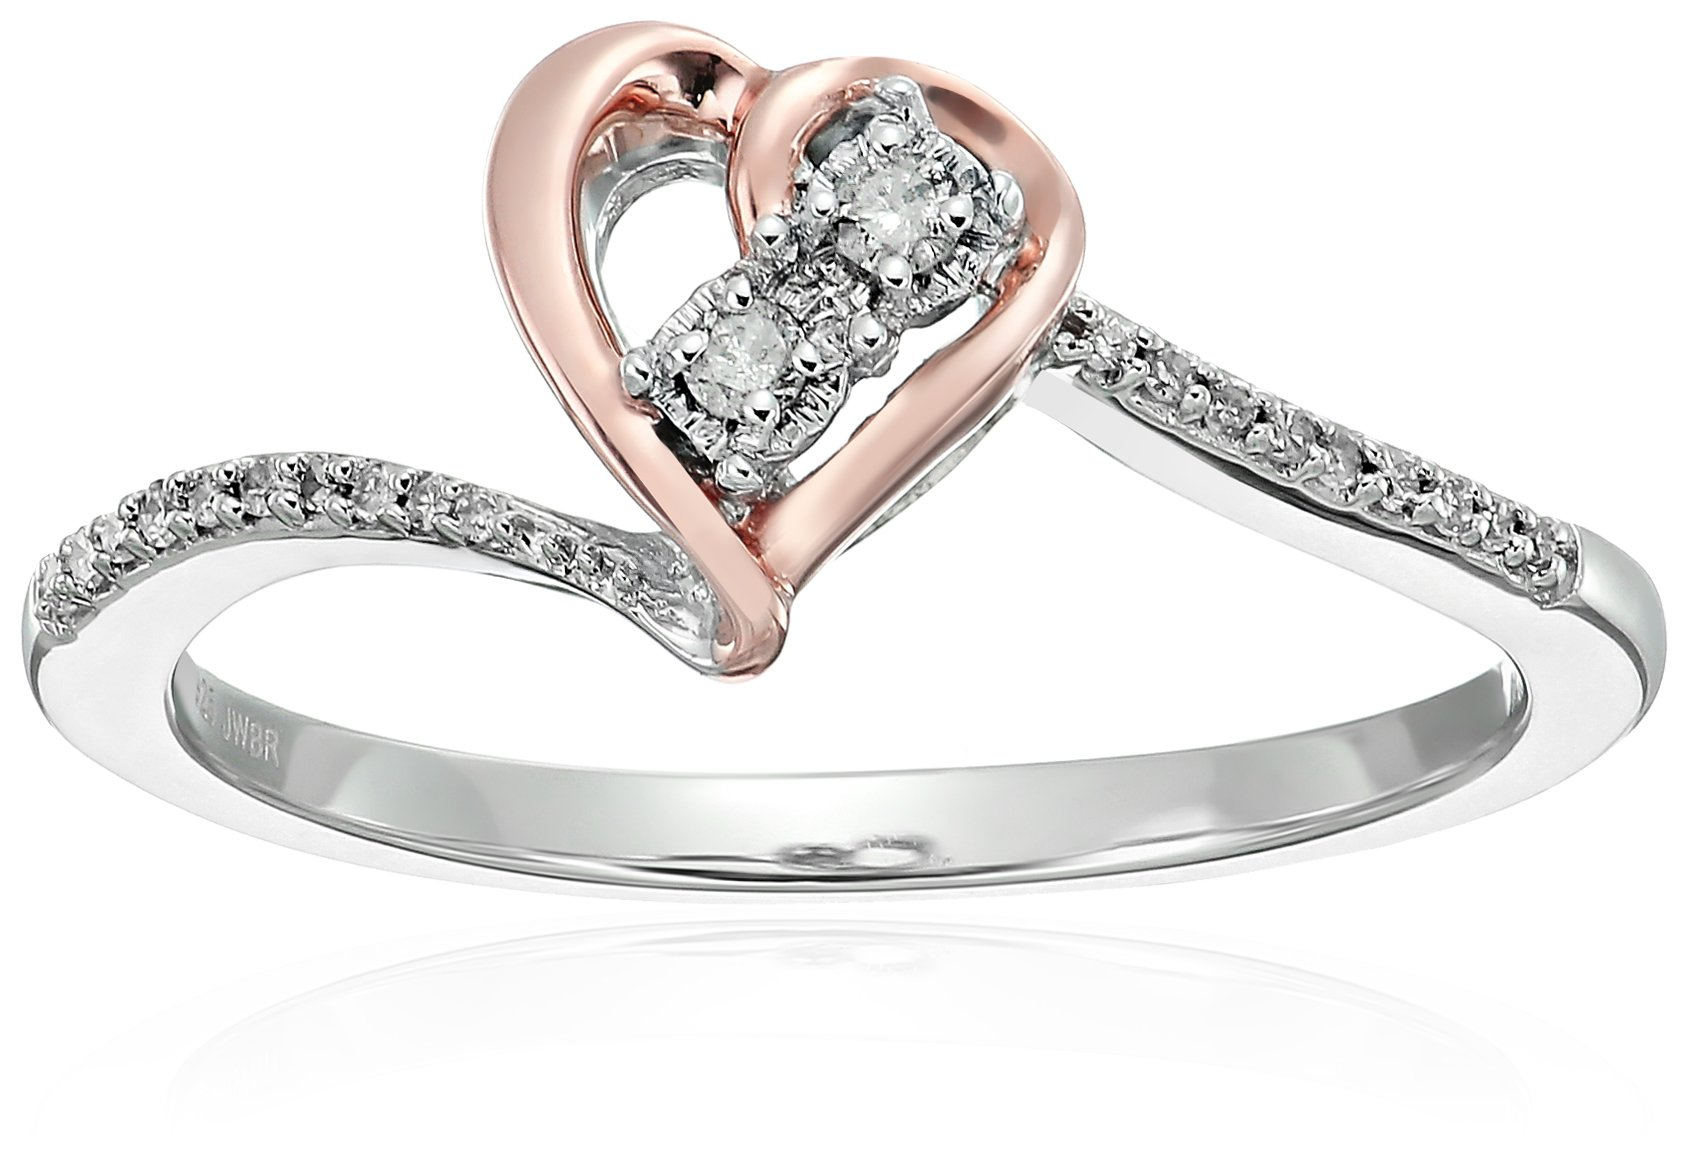 14k Rose Gold Over Sterling Silver Diamond Heart Promise Ring, Size 7 (1/10cttw)